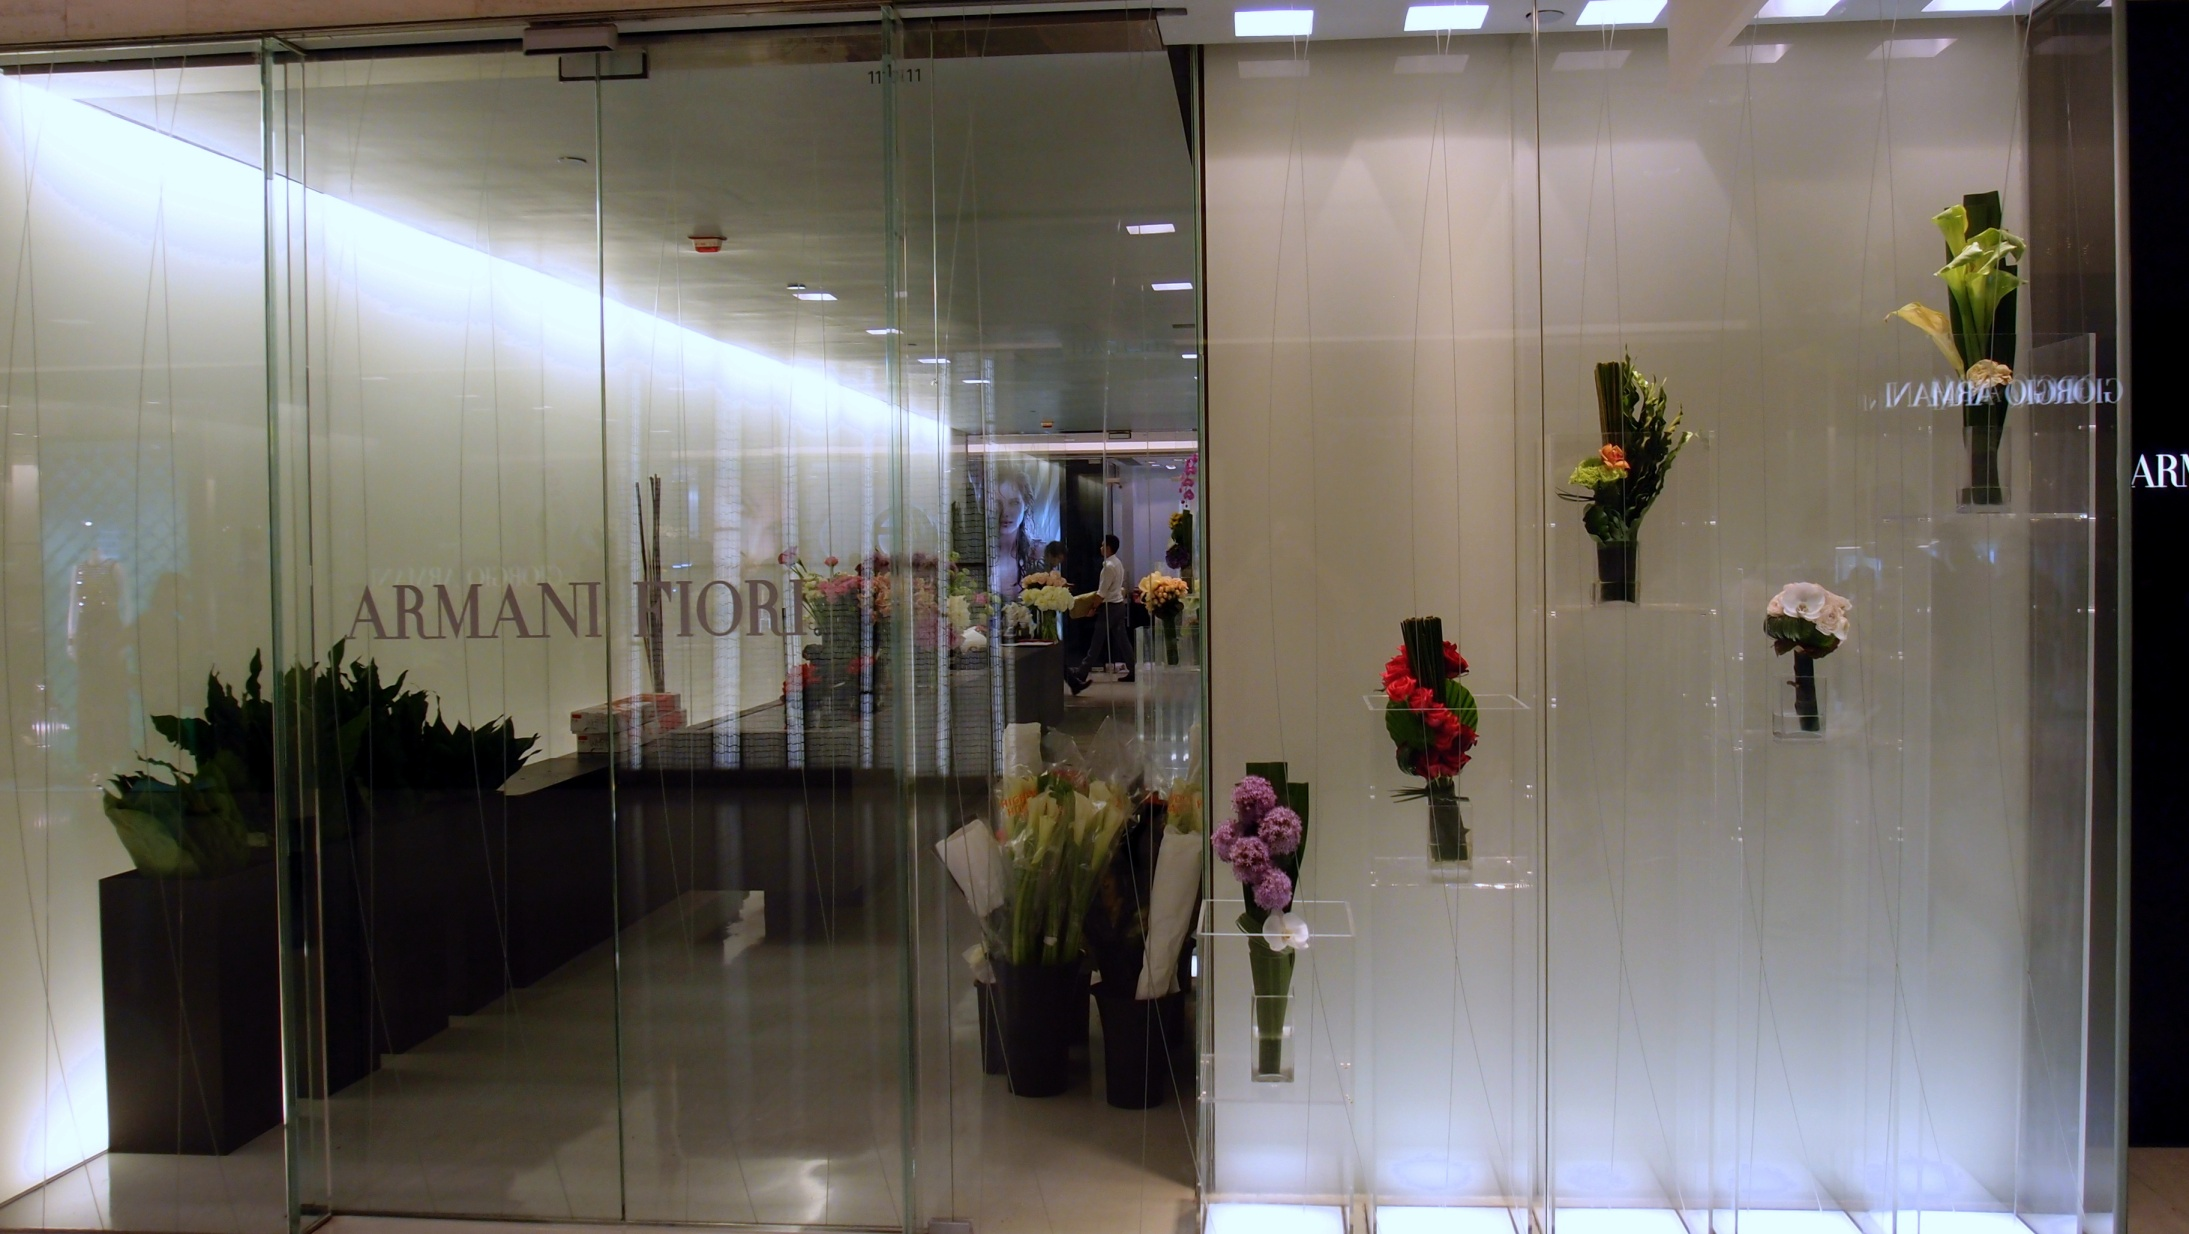 The Armani Flower shop in Chater House